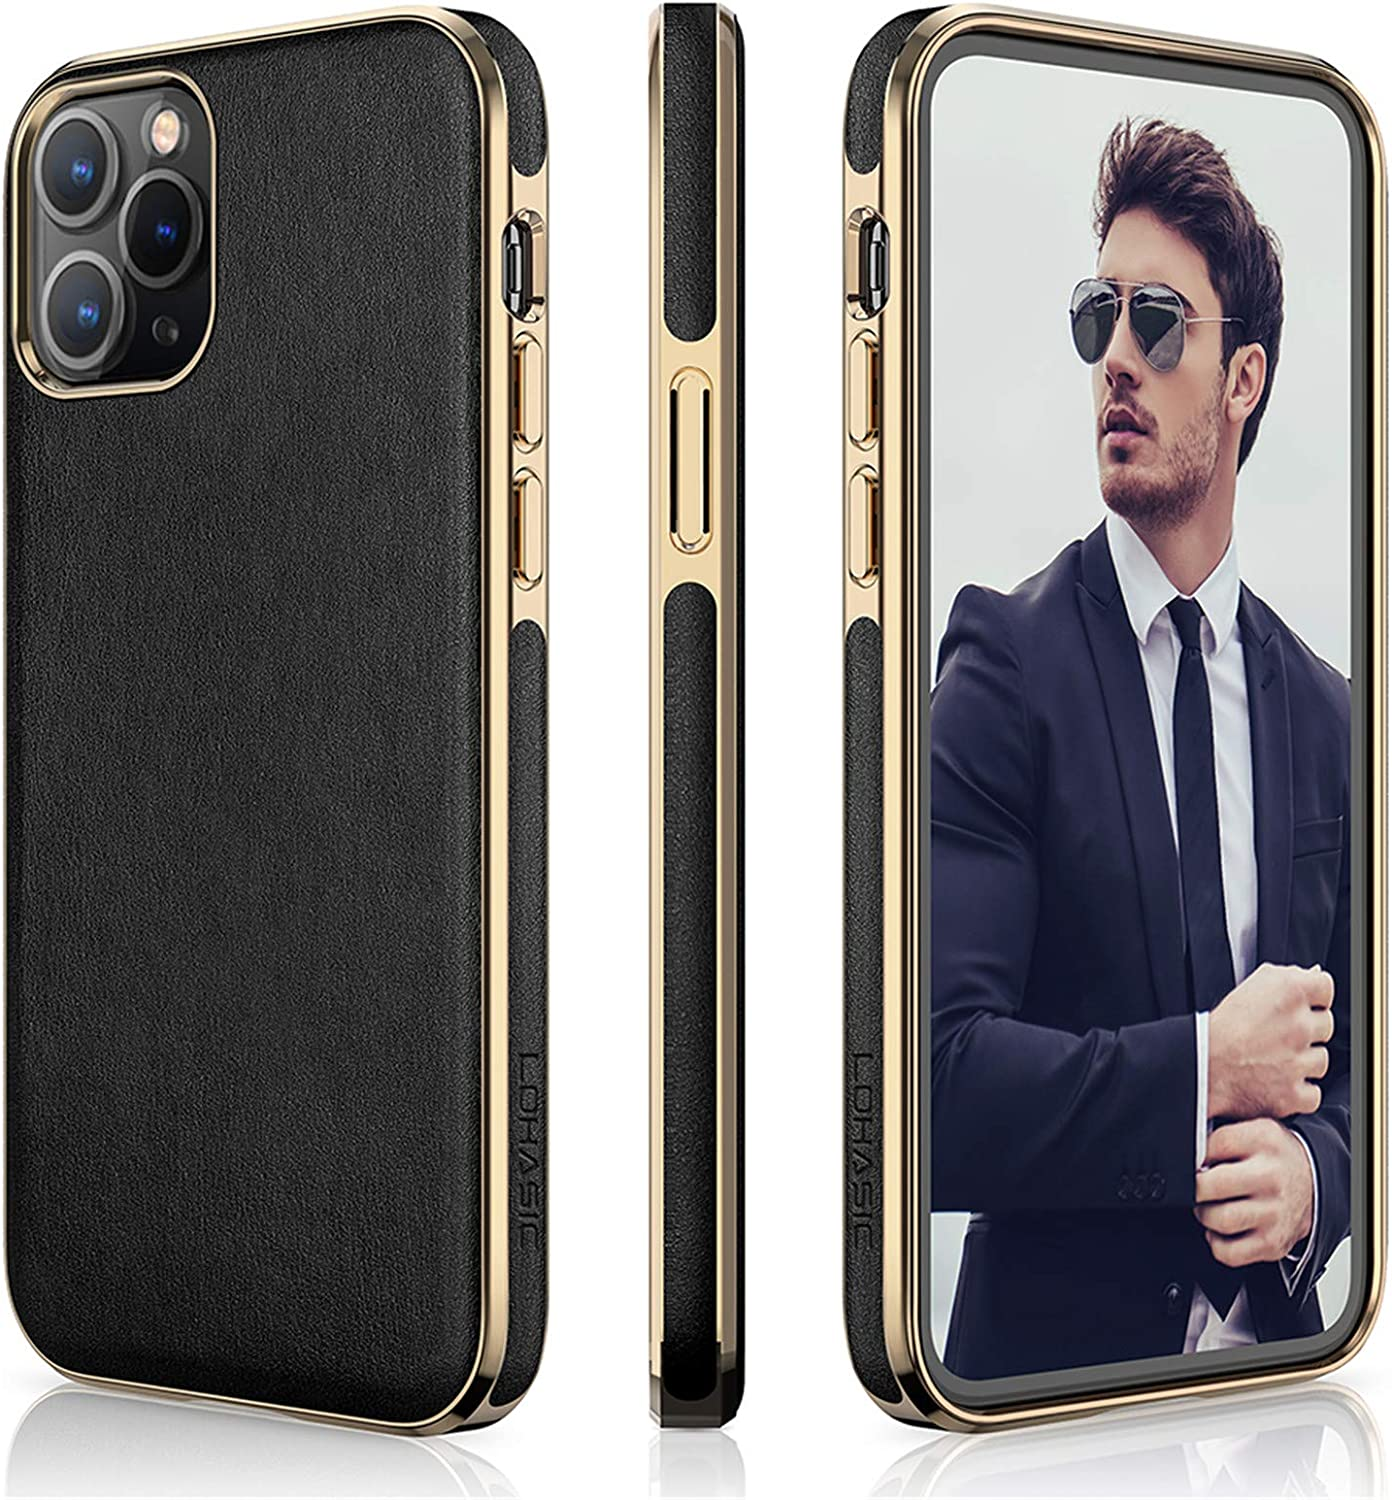 LOHASIC Case for iPhone 12 Pro Max, Soft PU Leather Classic Elegant Business Slim Thin Cover Anti Scratch Non-slip Full Body Protective Phone Cases Compatible with iPhone 12 Pro Max(2020) 6.7